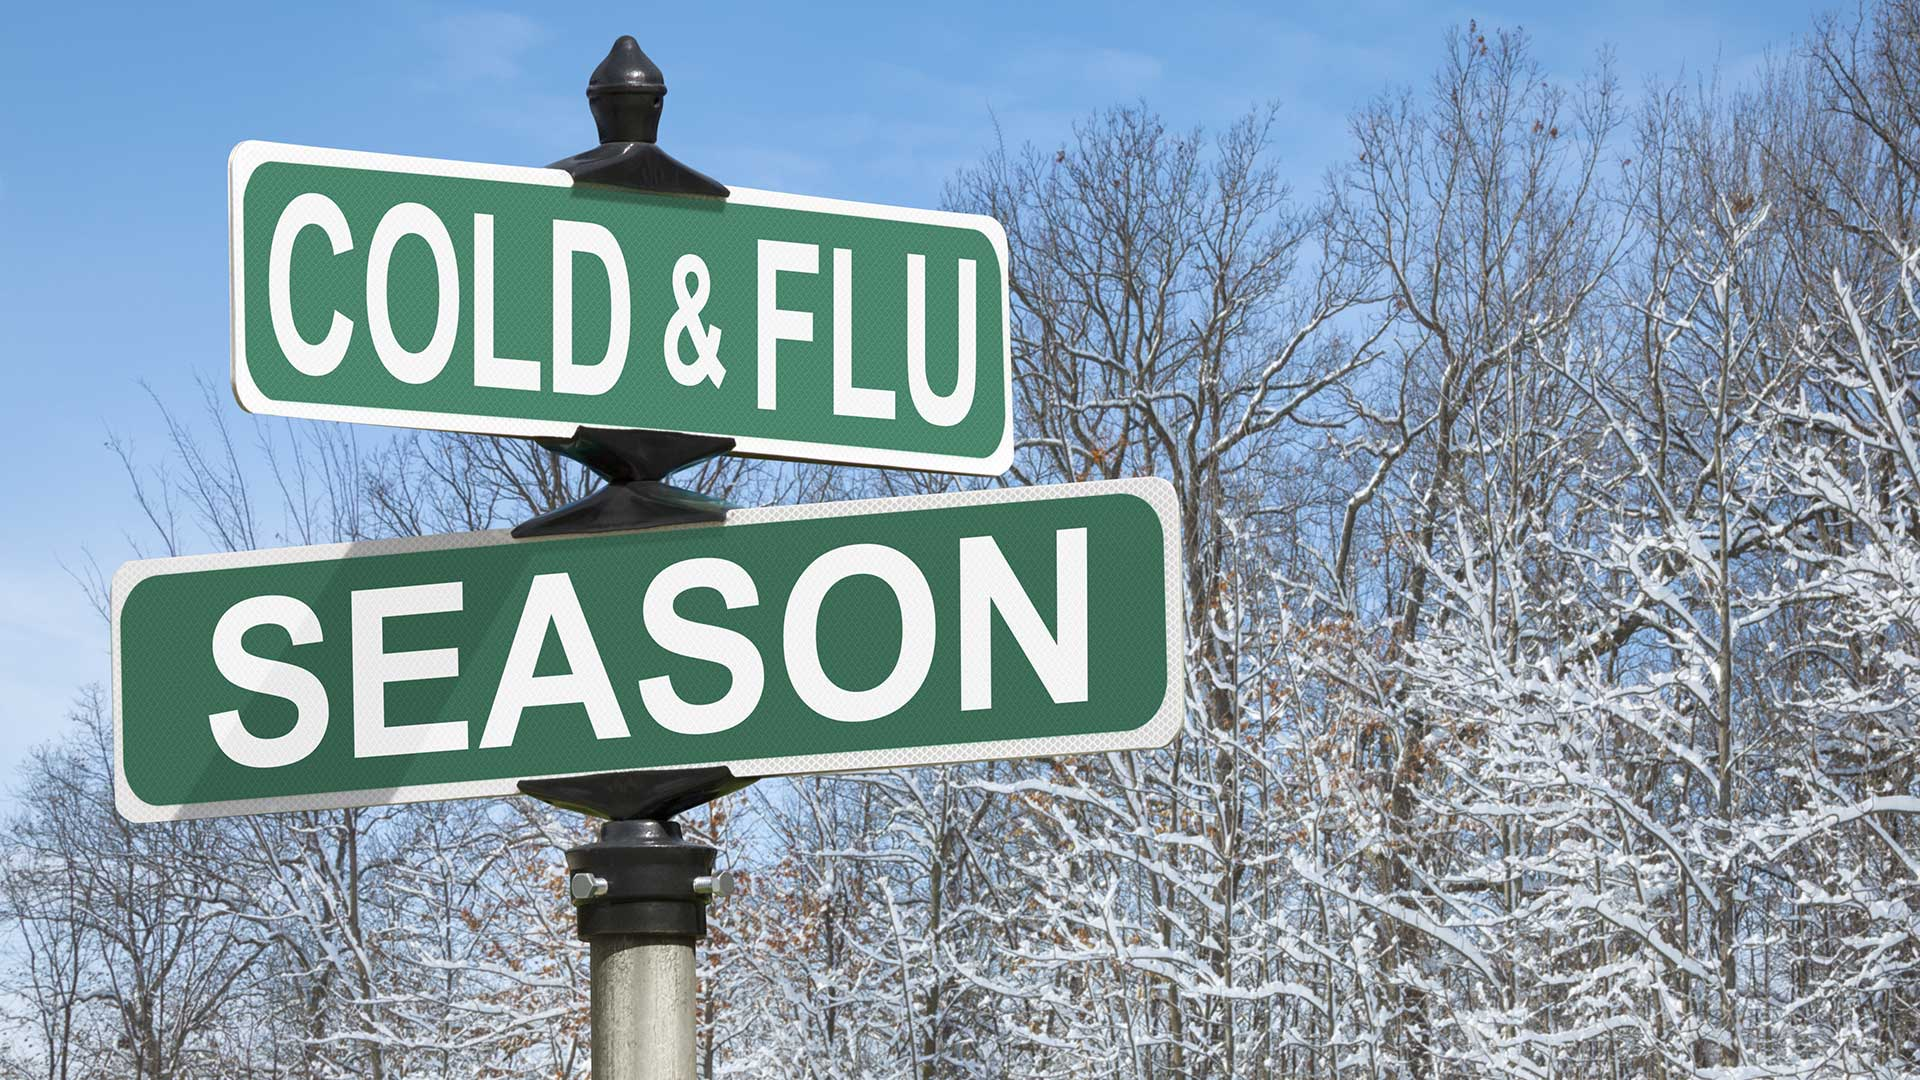 Cold and flu season lingering into March